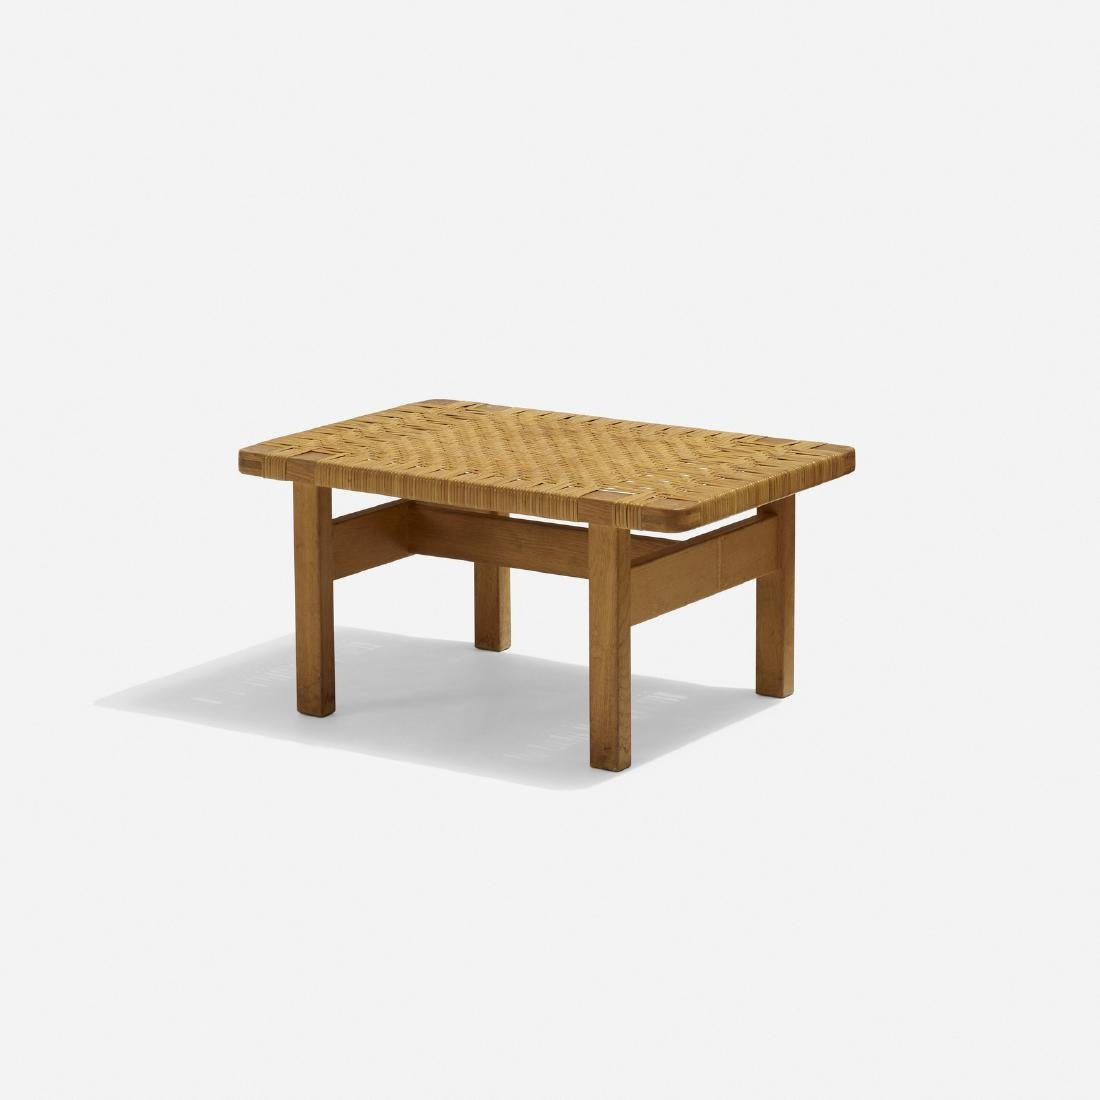 Borge Mogensen, bench, model 5273